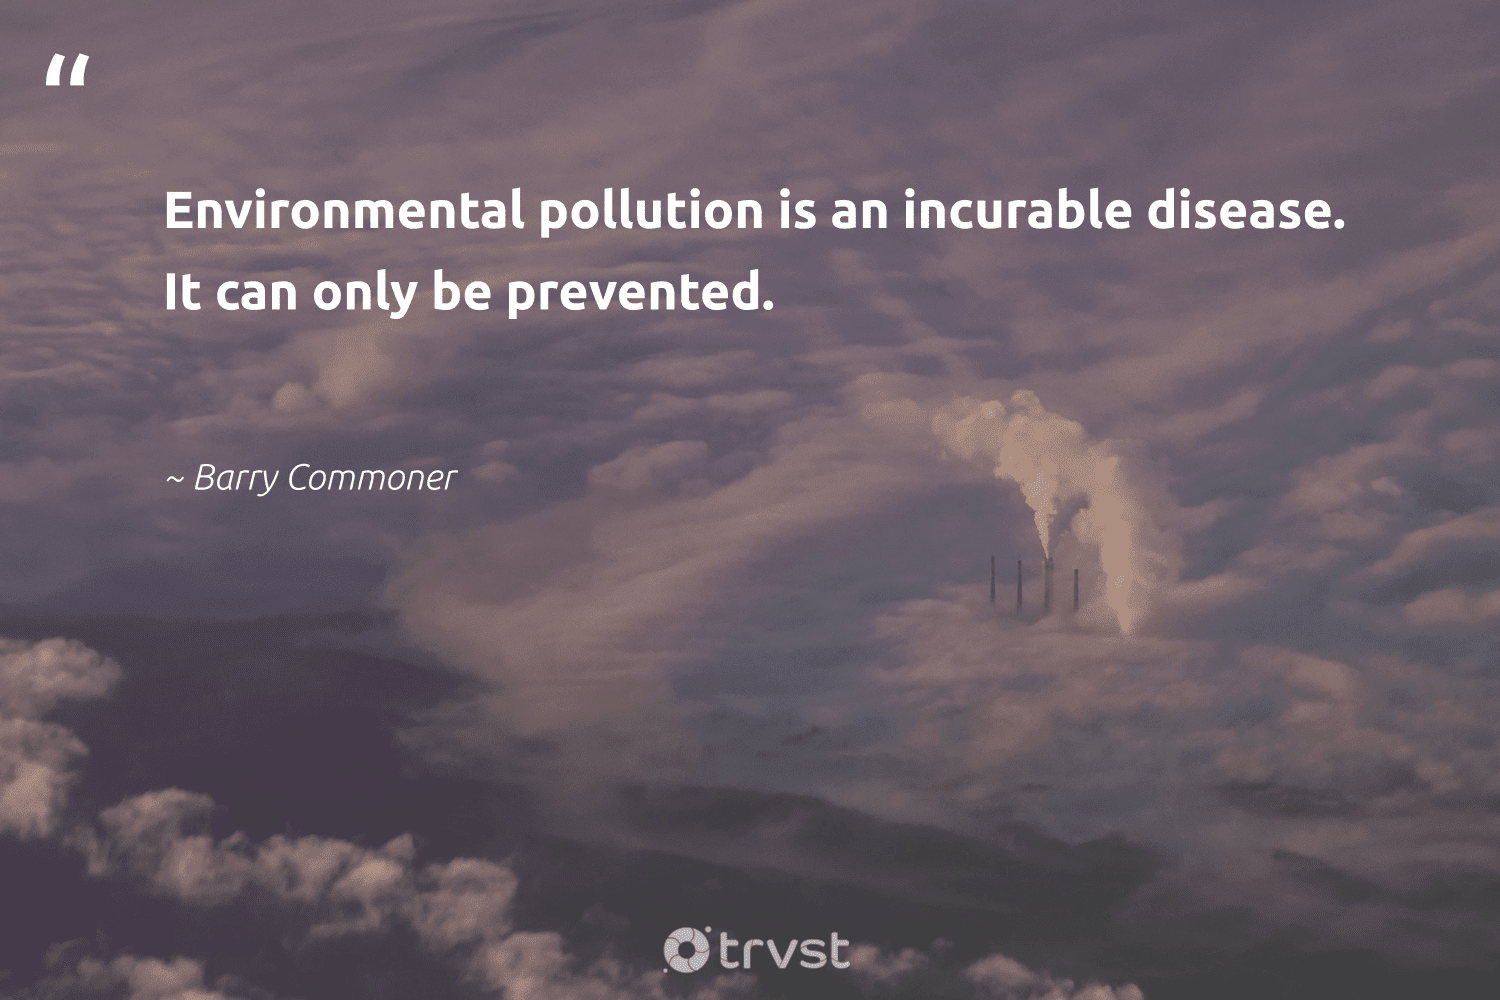 """""""Environmental pollution is an incurable disease. It can only be prevented.""""  - Barry Commoner #trvst #quotes #pollute #environmental #pollution #spill #ecofriendly #gogreen #collectiveaction #climatechange #wildlifeplanet #thinkgreen"""